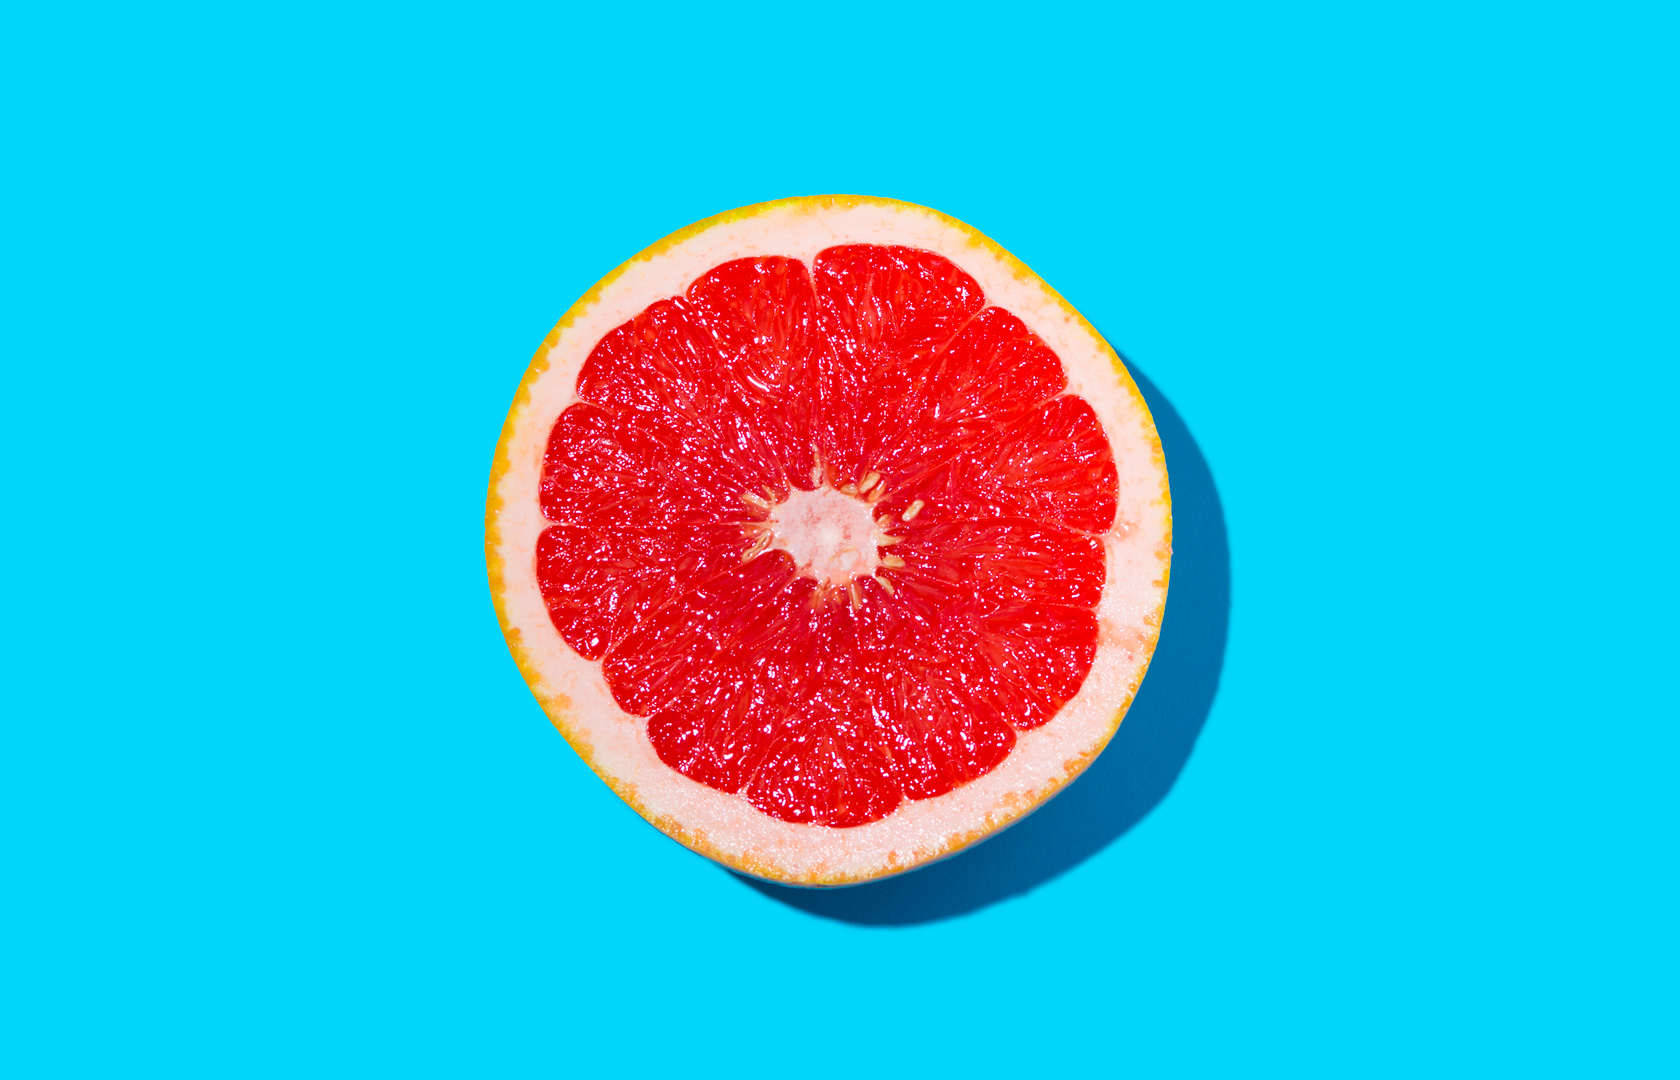 A slice of grapefruit food and beverage photography